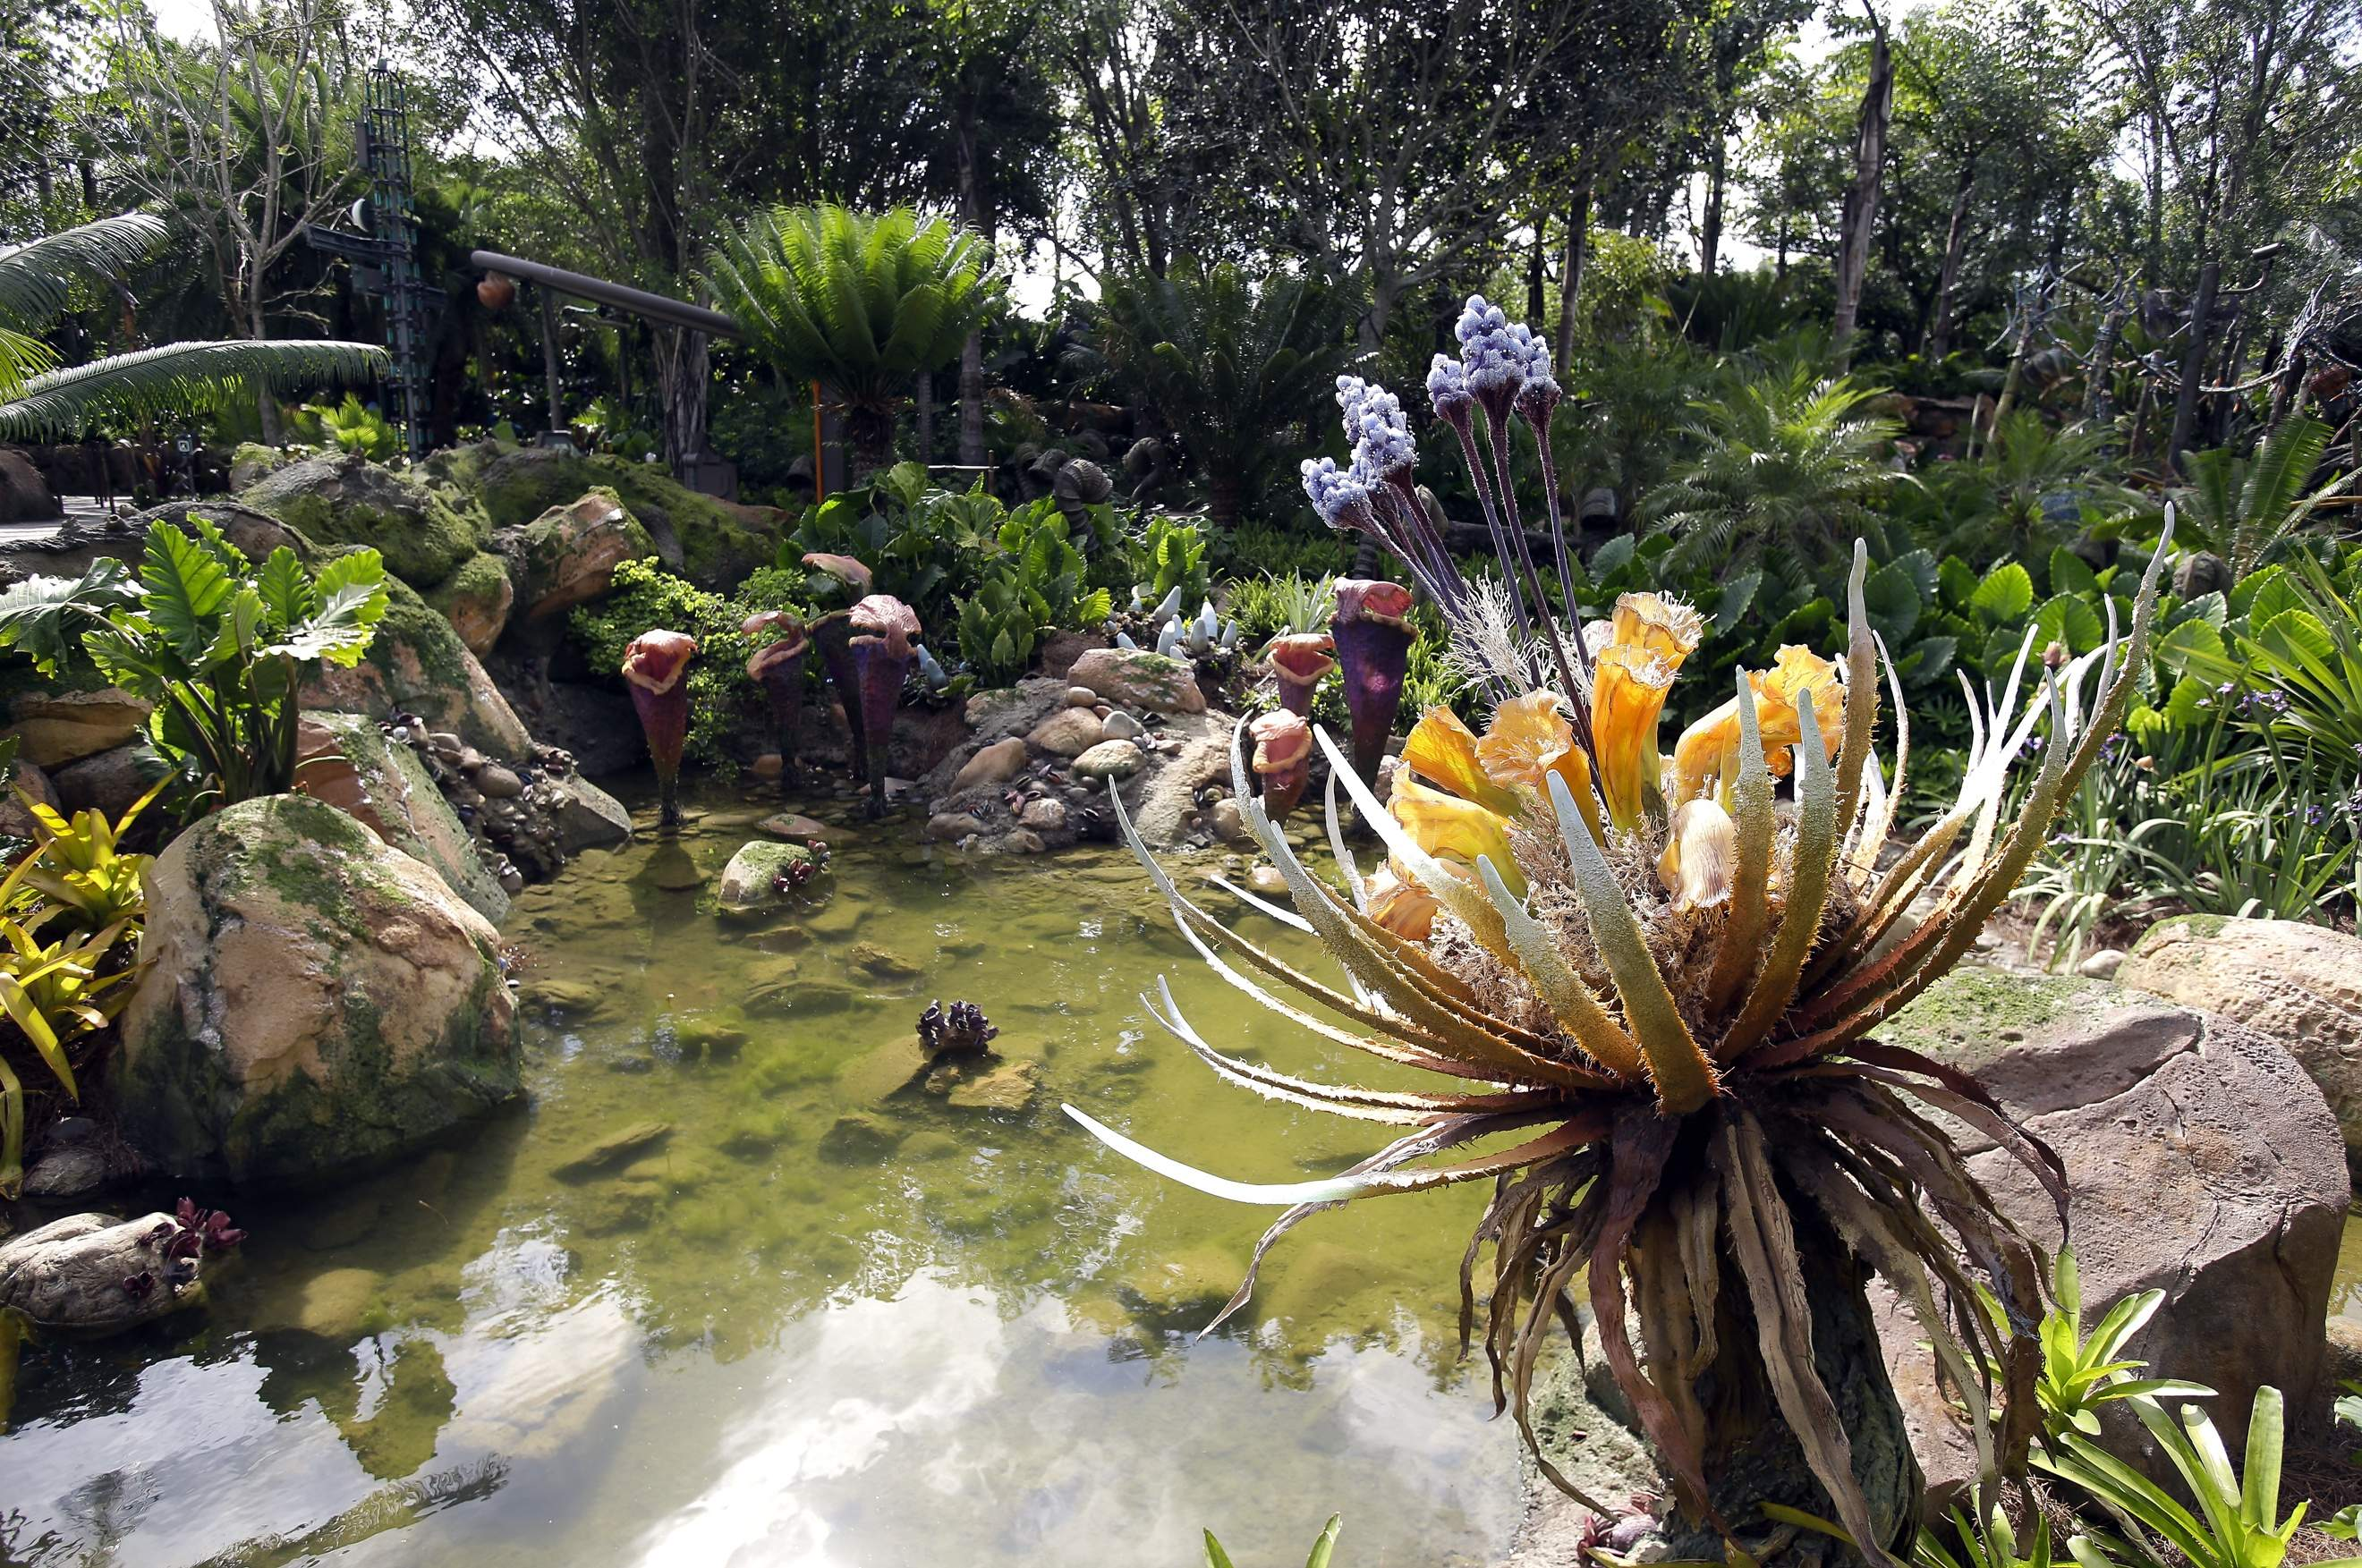 In this Saturday, April 29, 2017, photo, landscaping consisting of real Earth plant species mixed with sculpted Pandora flora surrounds a pond at the Pandora-World of Avatar land attraction in Disney's Animal Kingdom theme park at Walt Disney World in Lake Buena Vista, Fla. The 12-acre land, inspired by the 'Avatar' movie, opens in Florida at the end of May at Walt Disney World's Animal Kingdom. It cost a half-billion dollars. THE ASSOCIATED PRESS